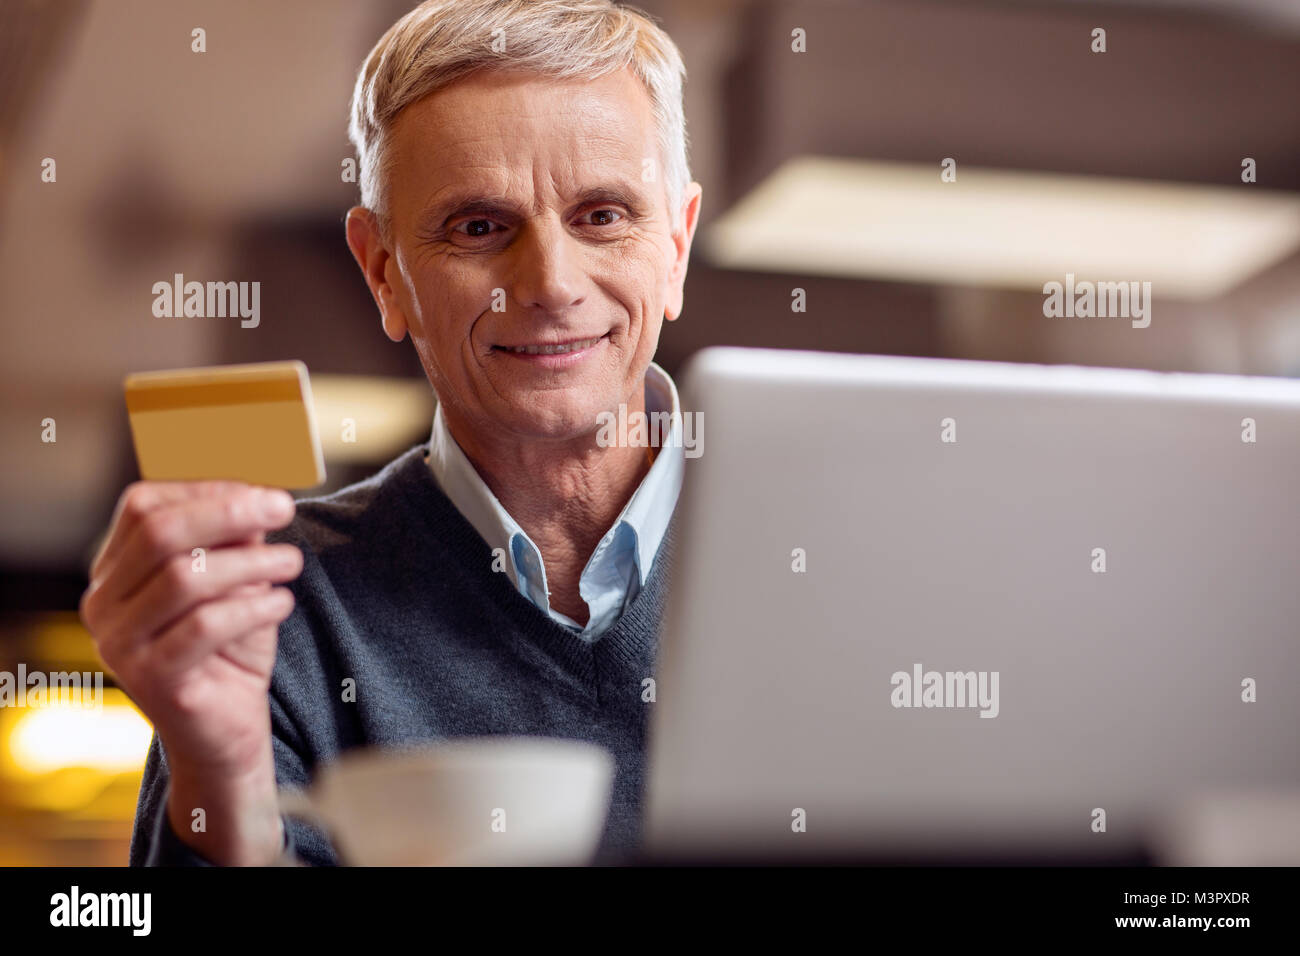 Cheerful mature man typing his card number - Stock Image